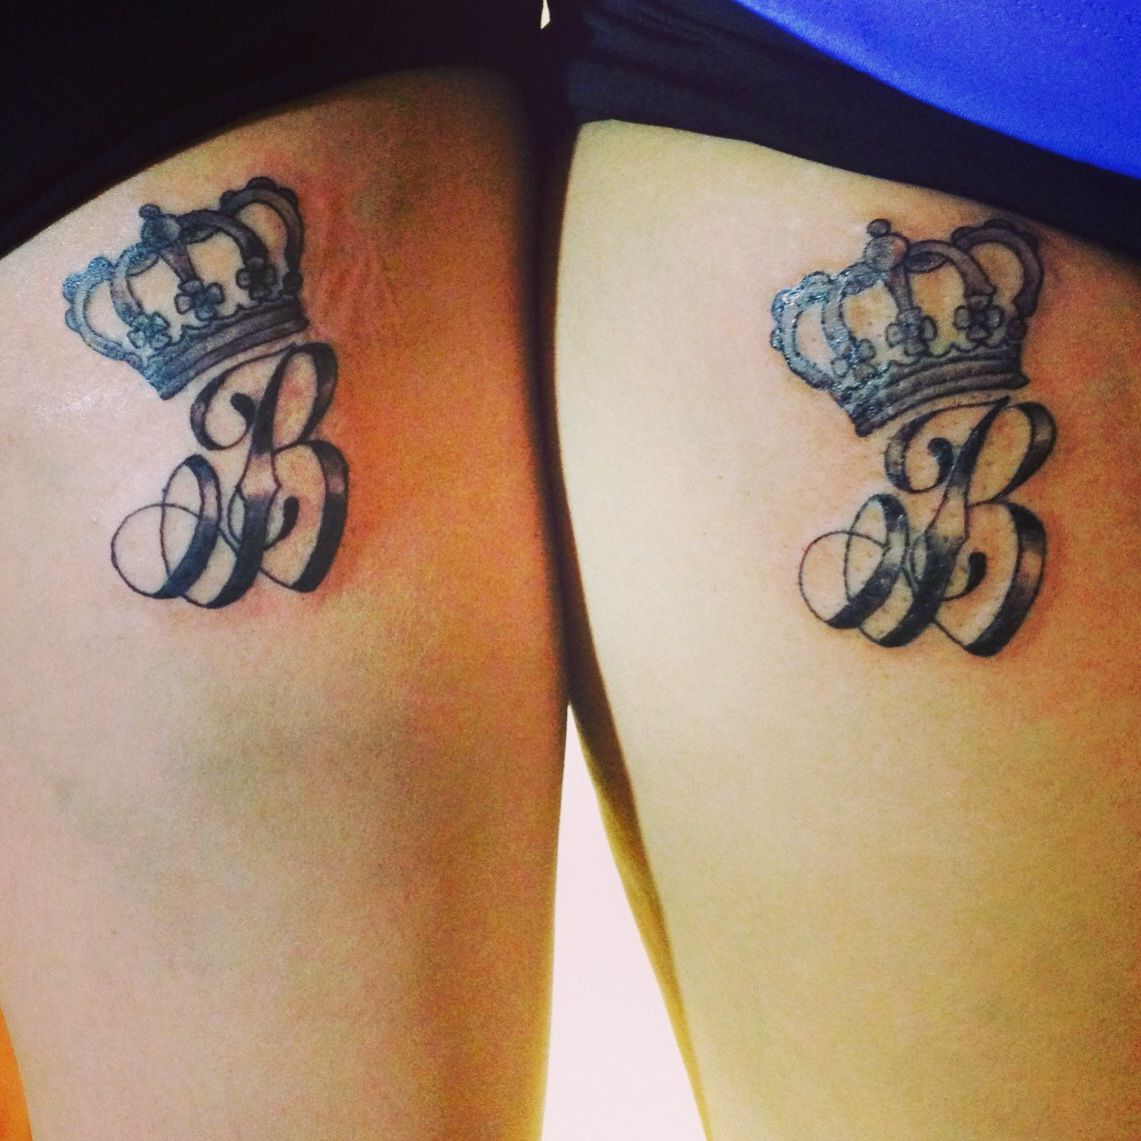 You can call me queen B... #newtat #tattoo #ink #crown #b ...